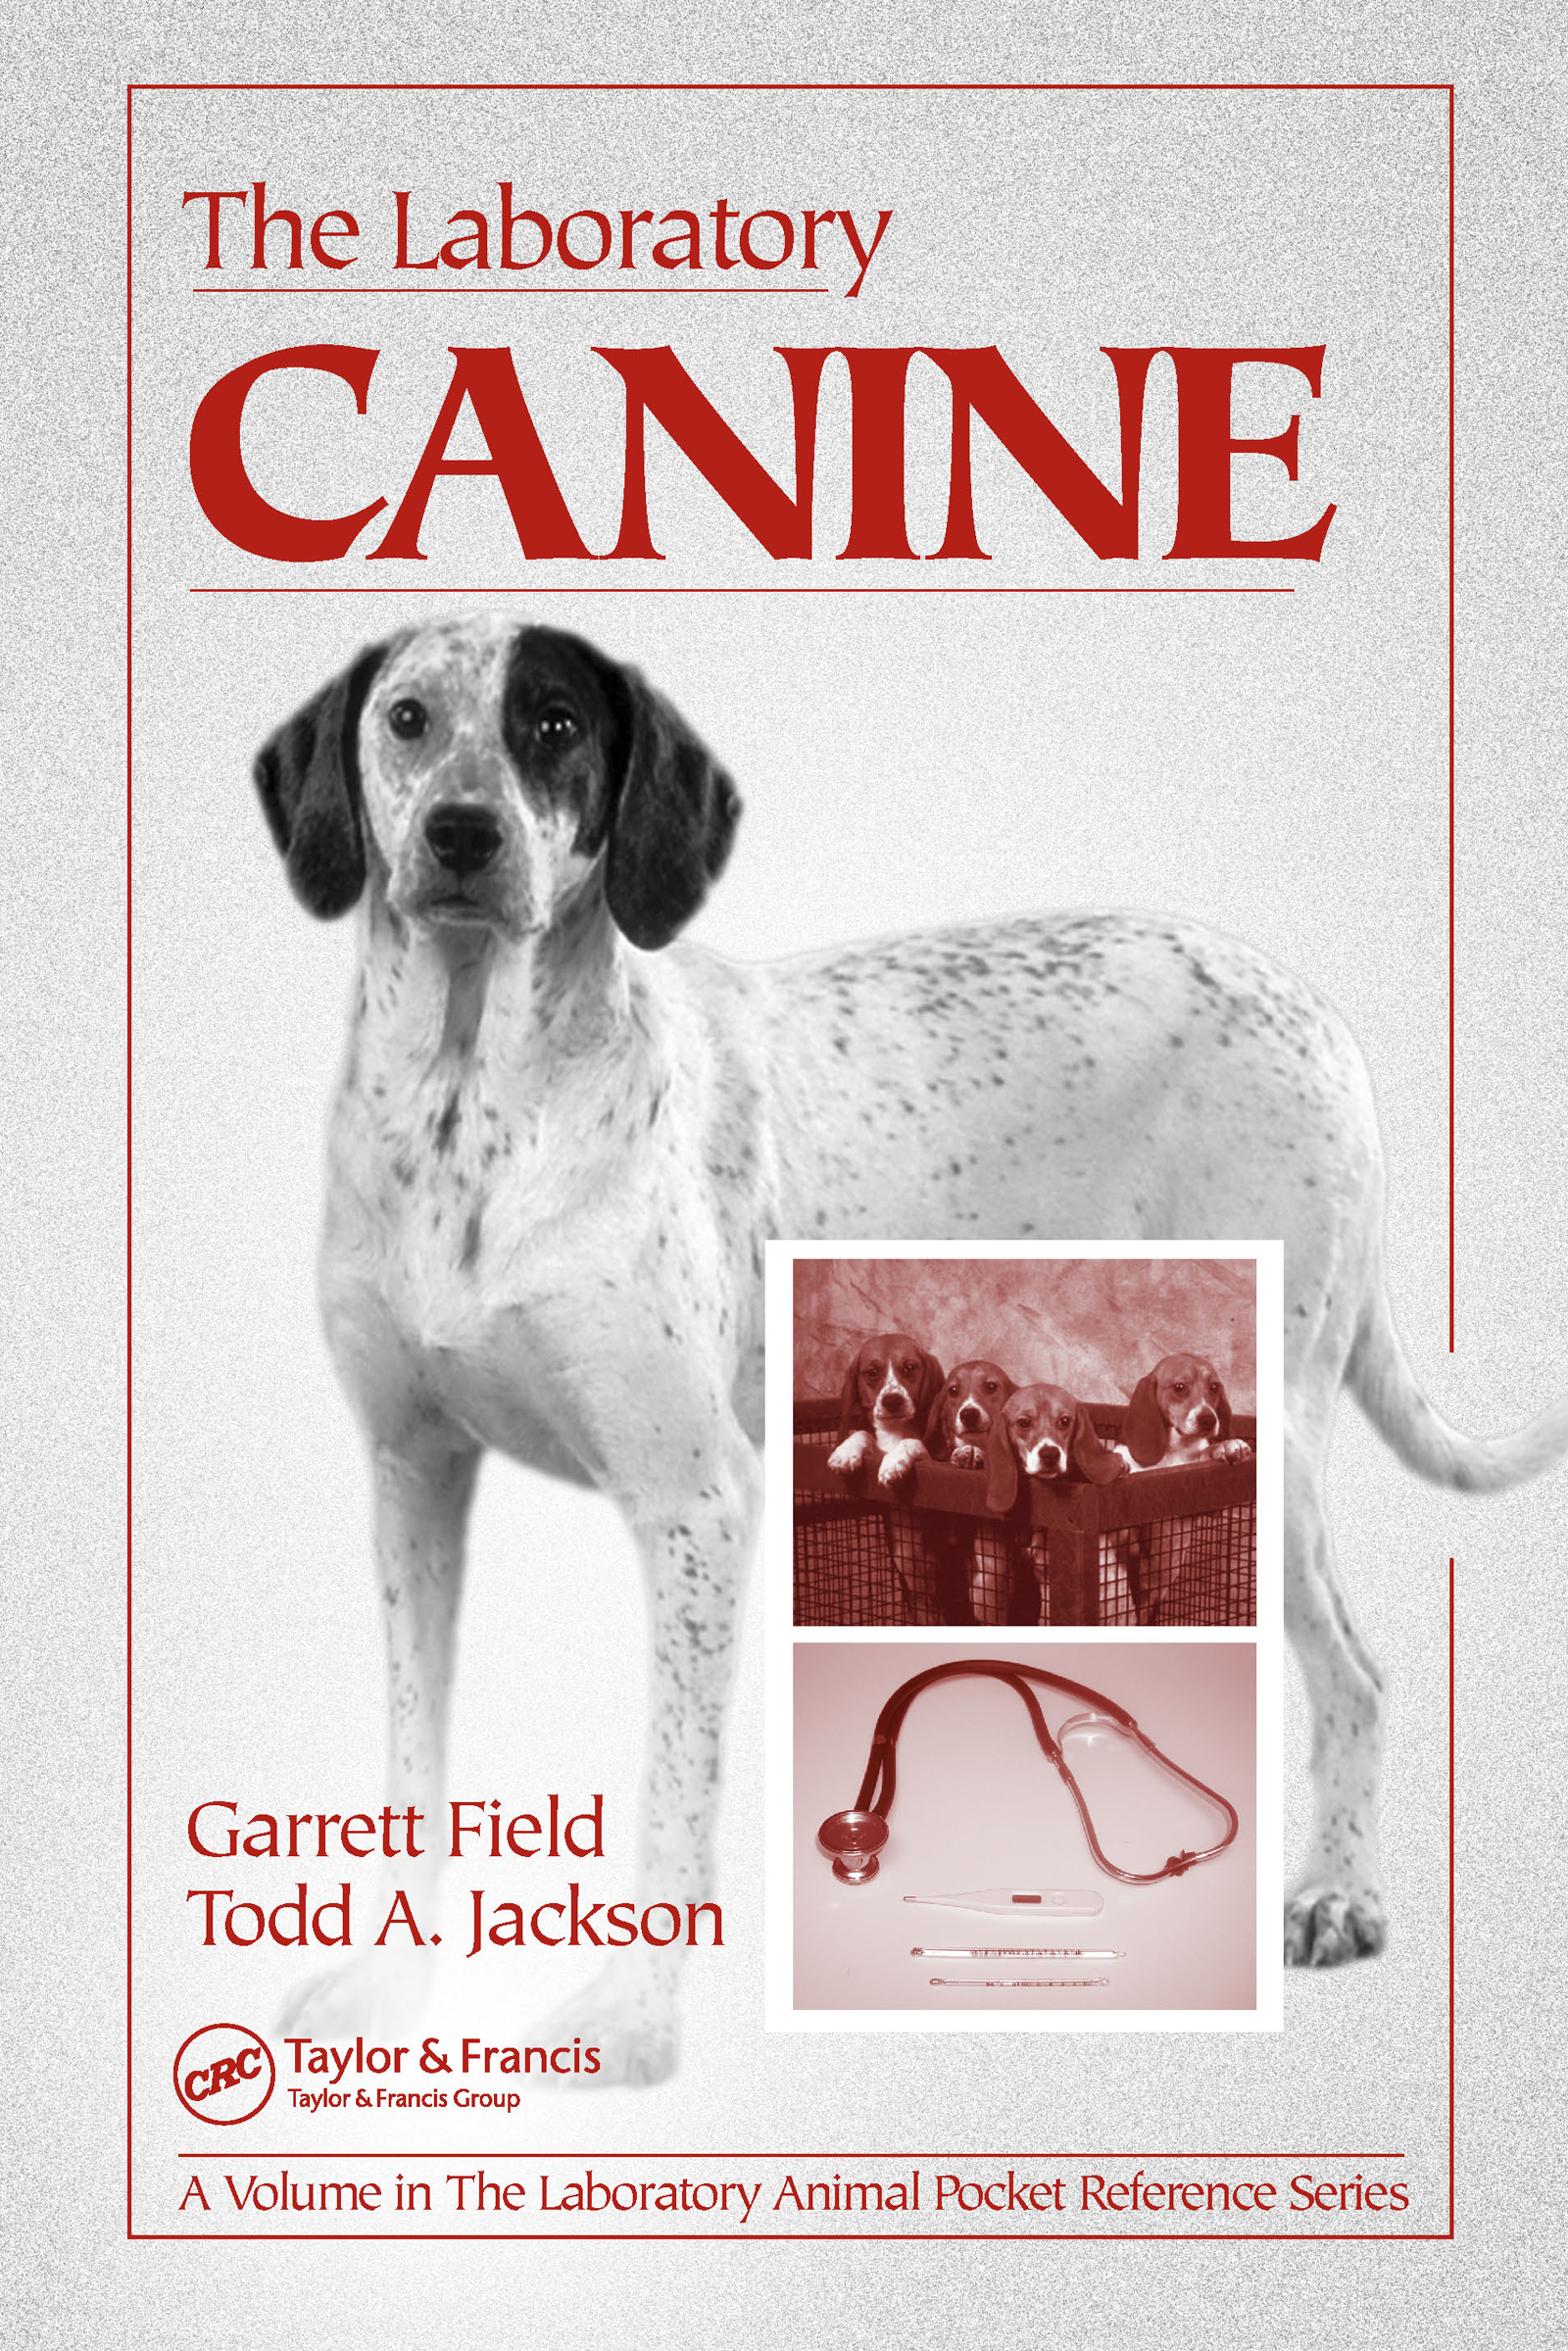 The Laboratory Canine book cover